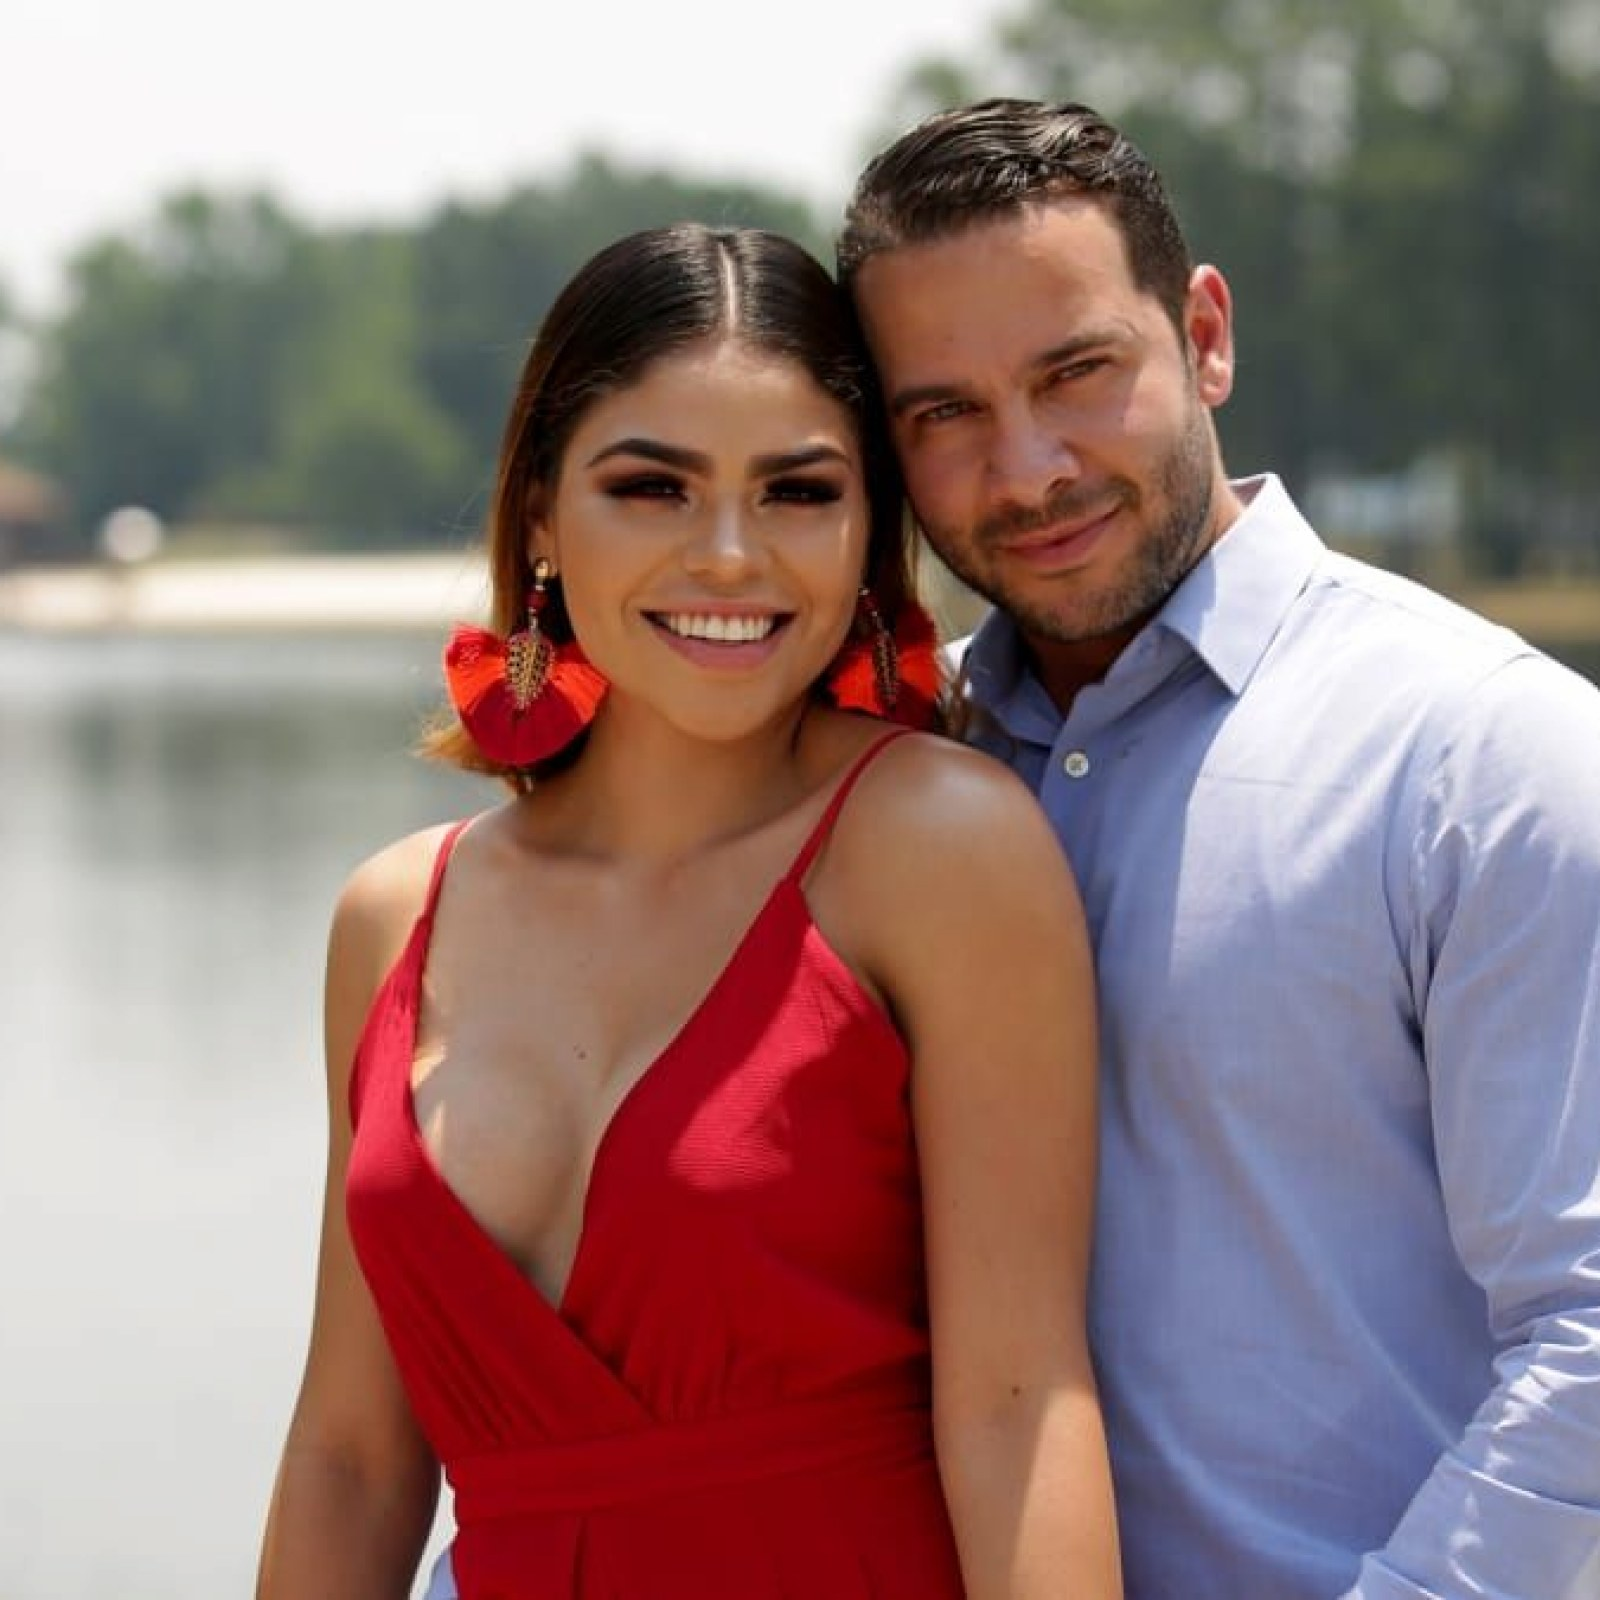 90 Day Fiancé' Where They Are Now: Are Fernanda Flores and